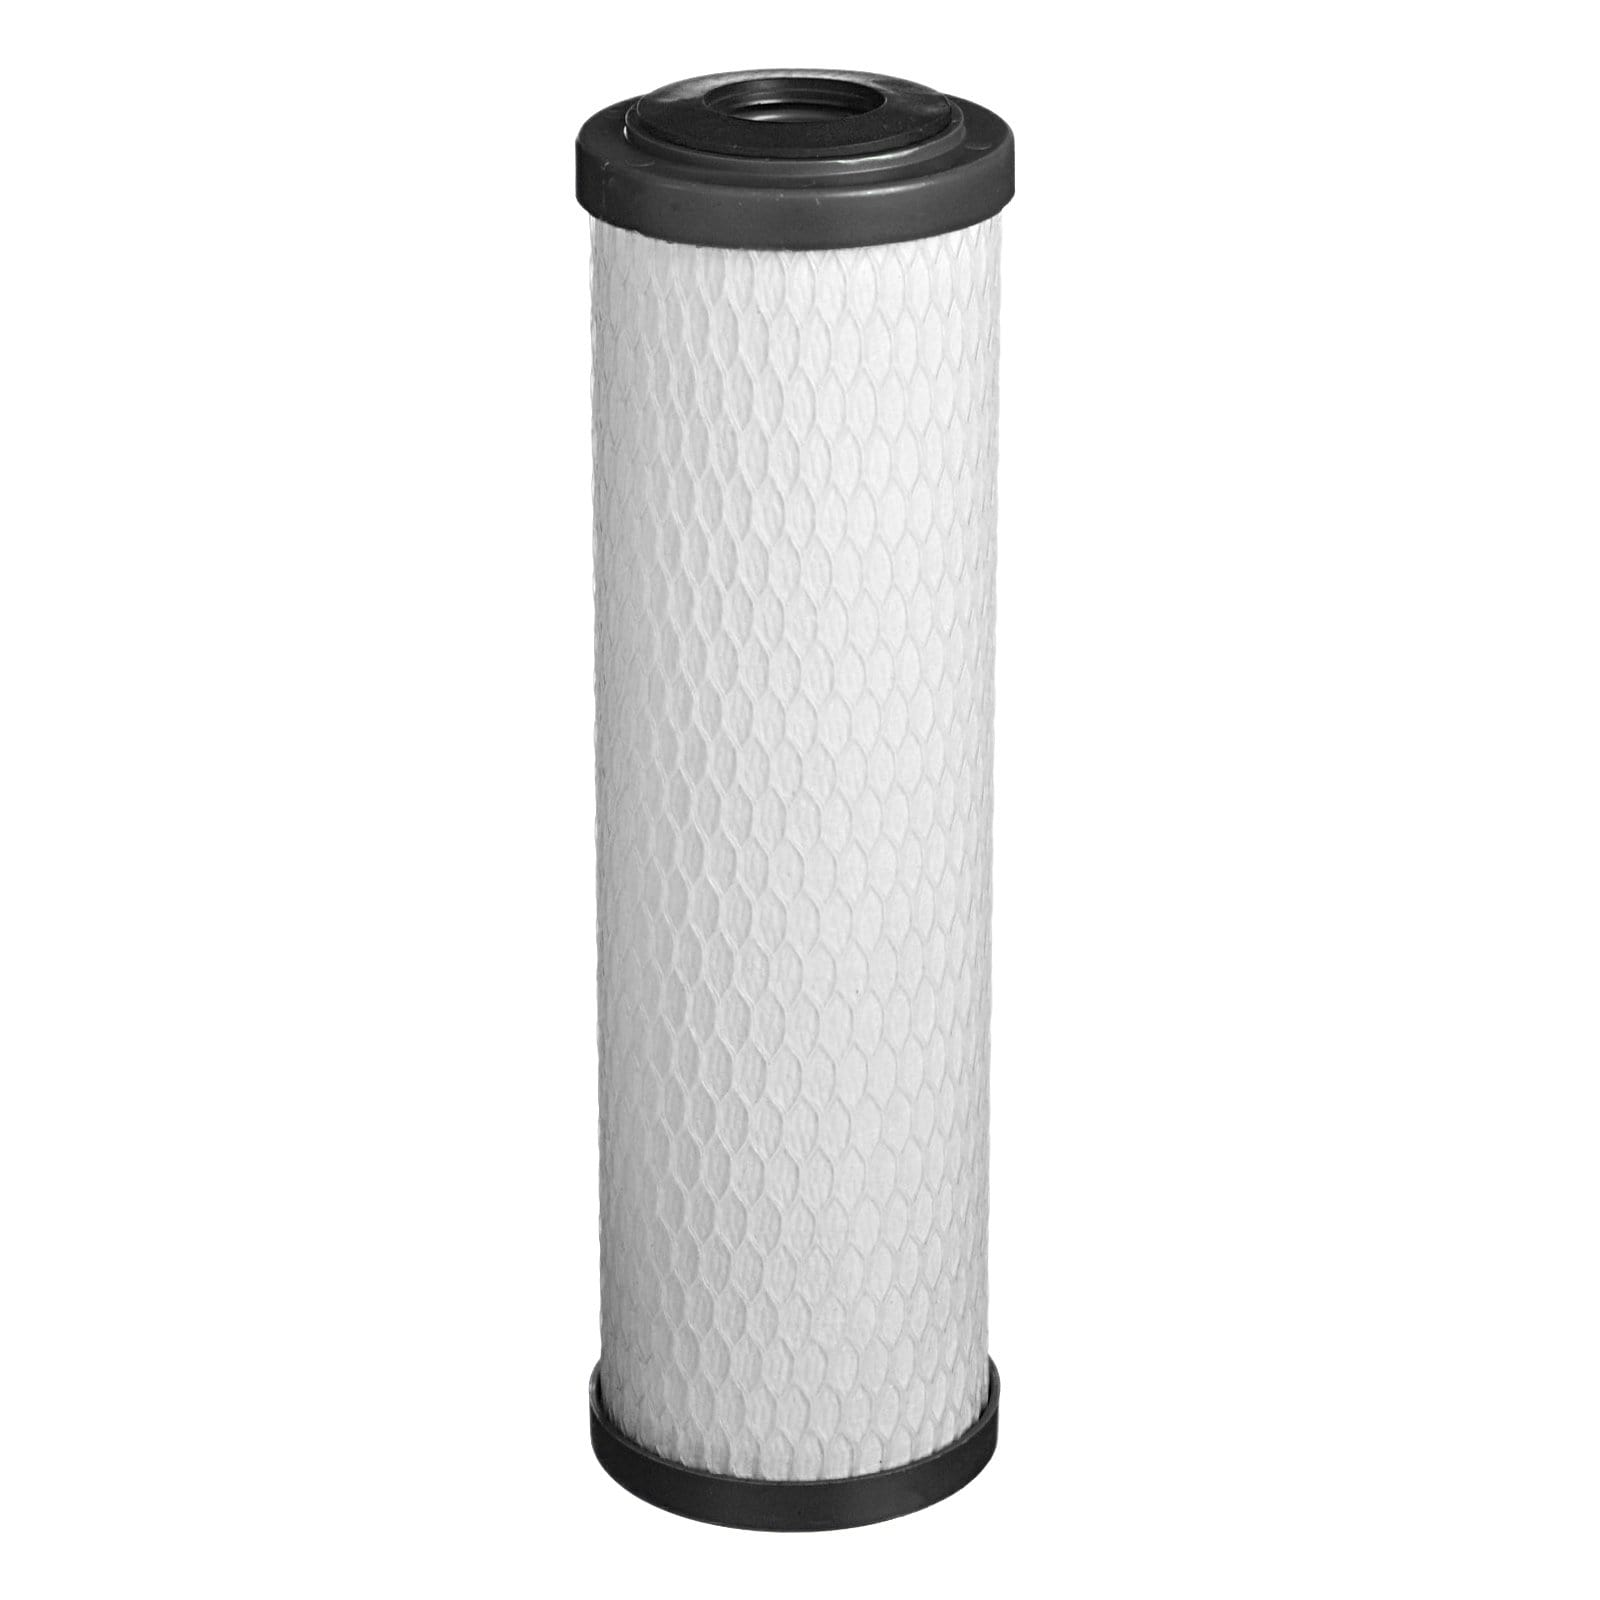 HIGH GRADE Carbon Block Filter - Window Cleaning Warehouse Ltd